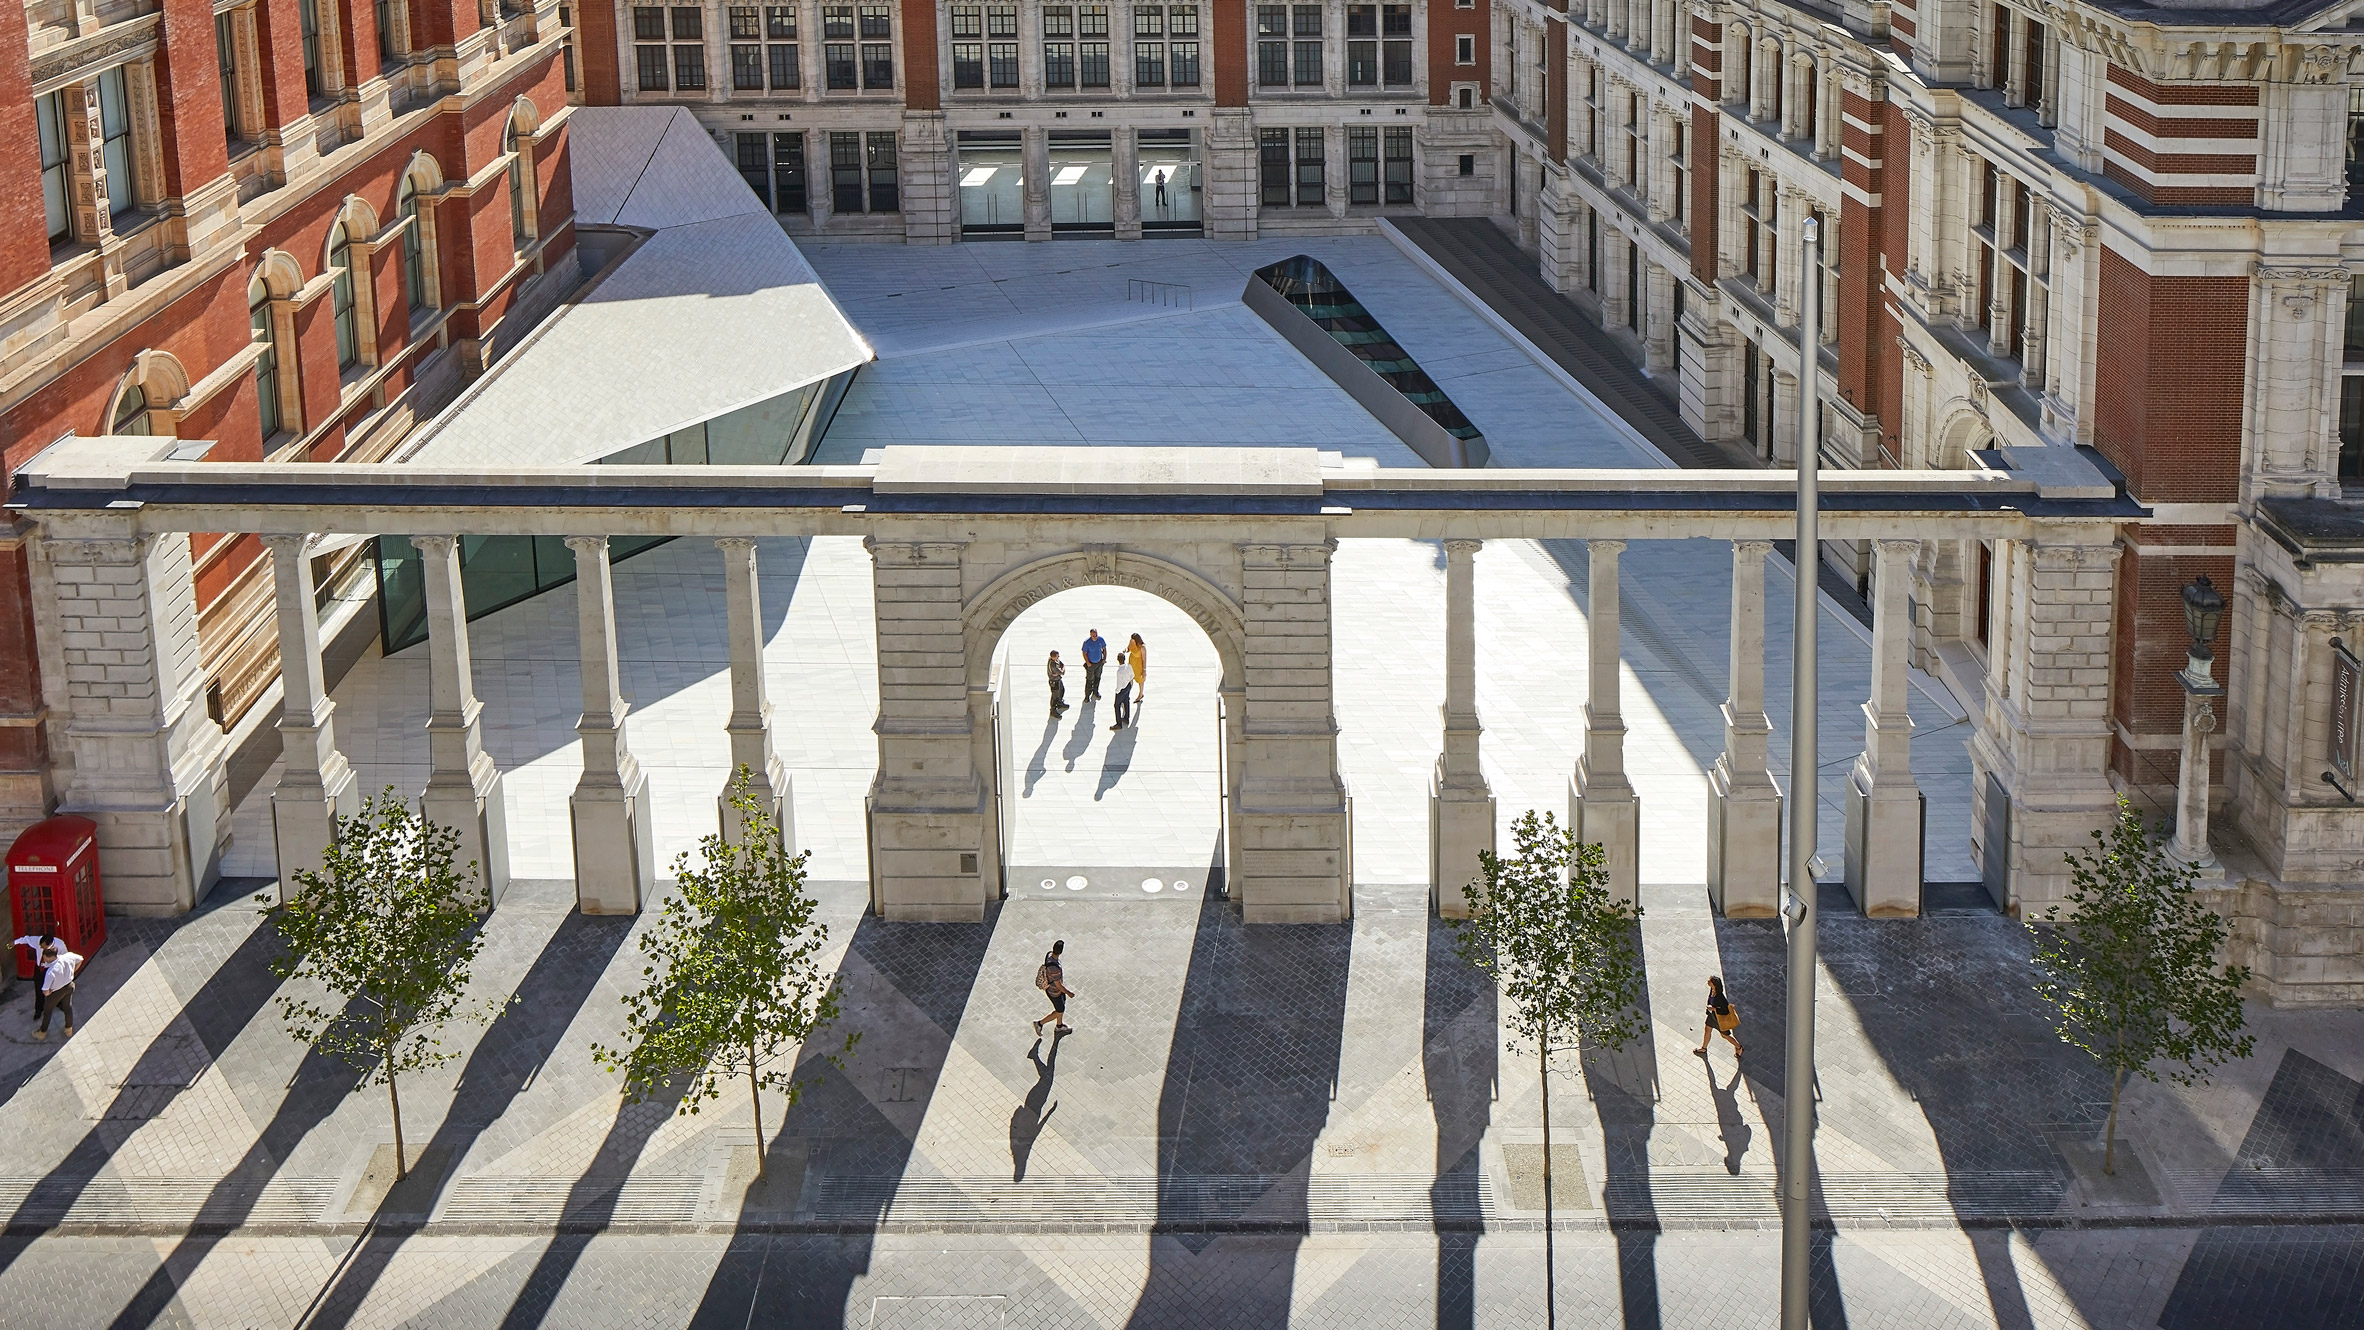 AL_A completes tile-covered entrance and subterranean gallery for London's V&A museum